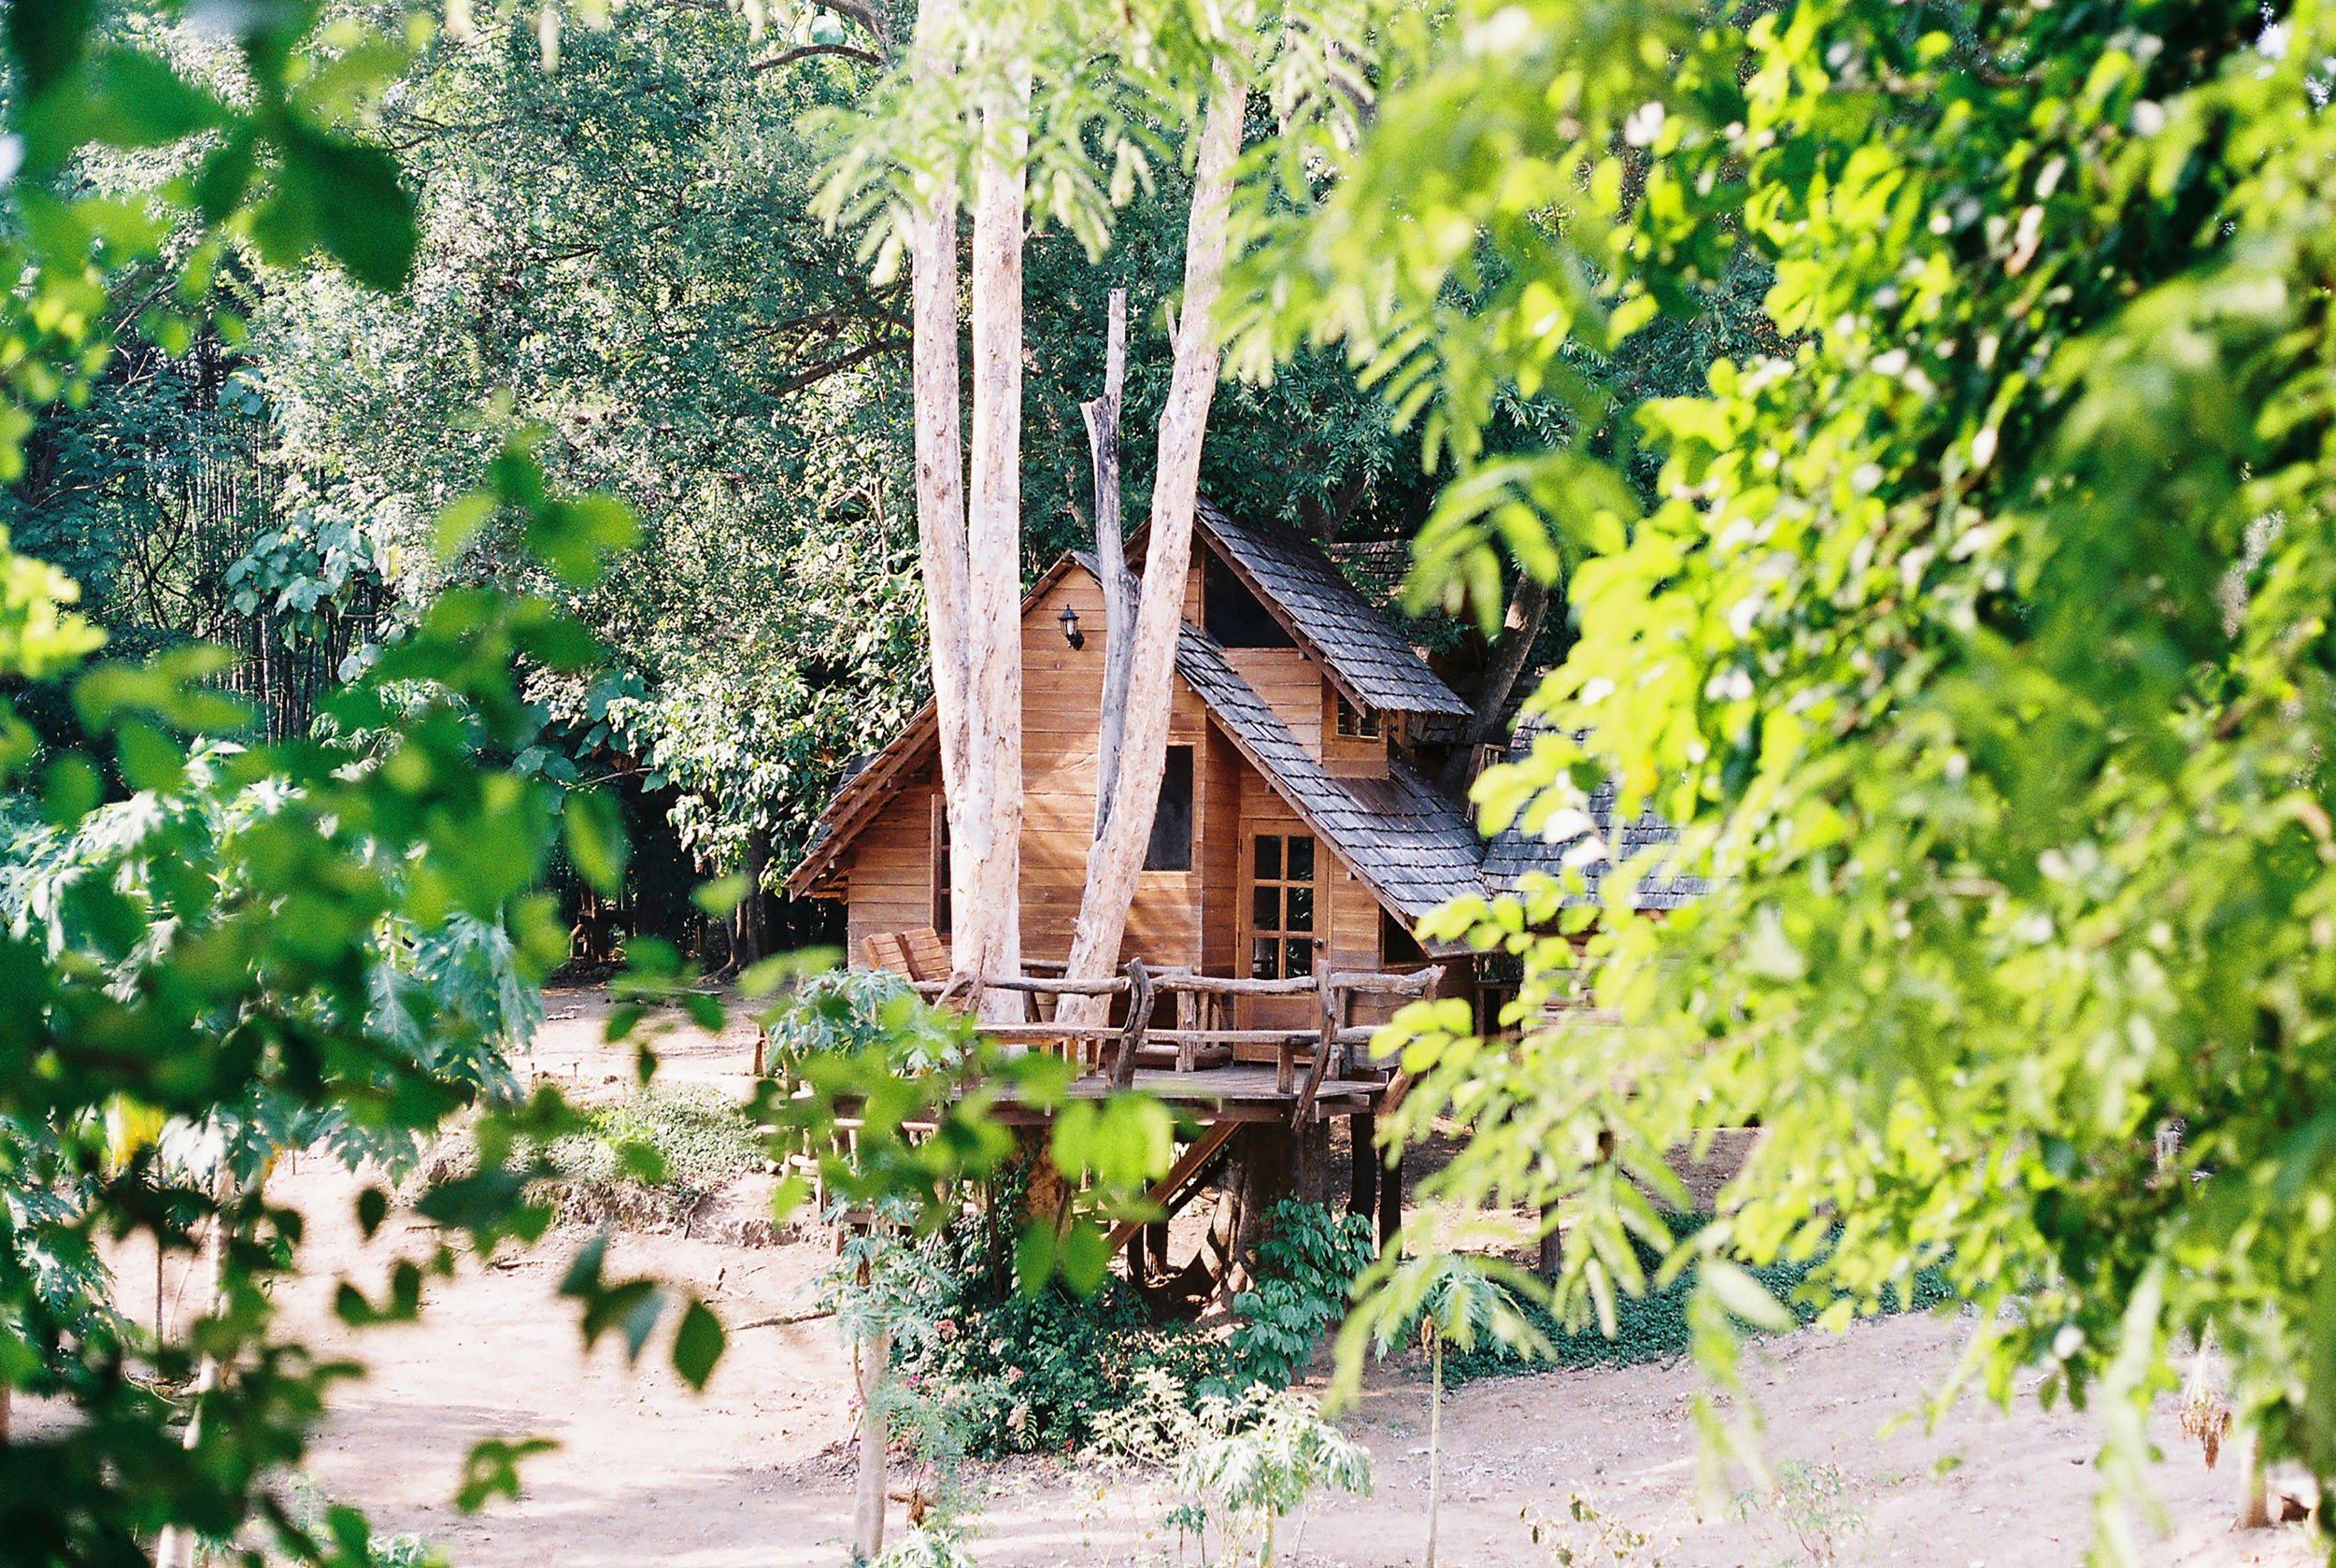 Staying in a treehouse - Chiang Mai, Thailand